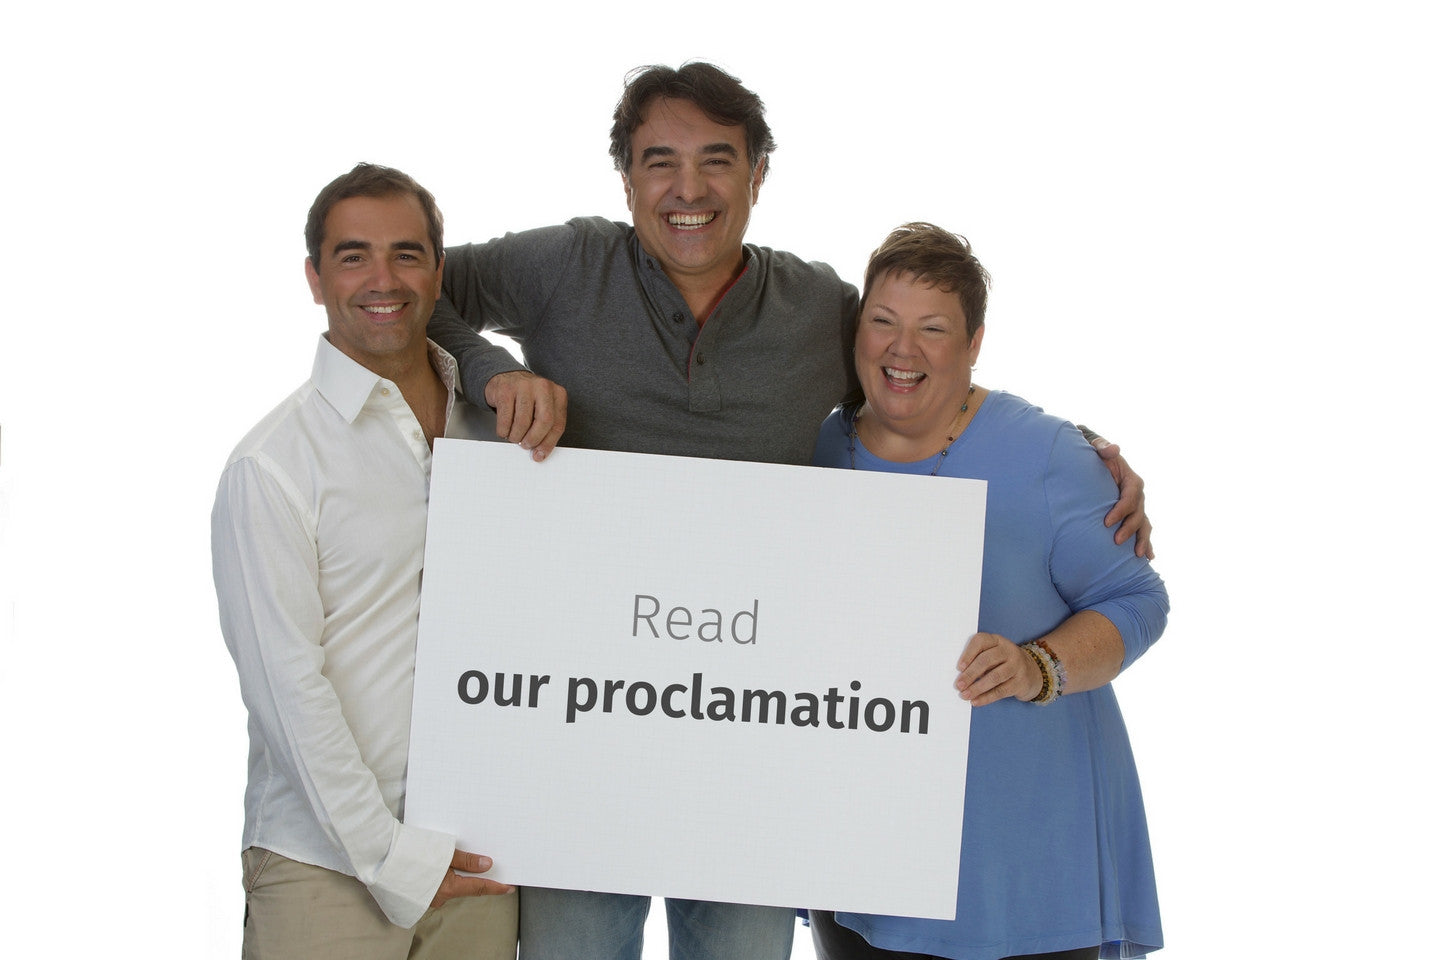 The Fabric of Humanity proclamation